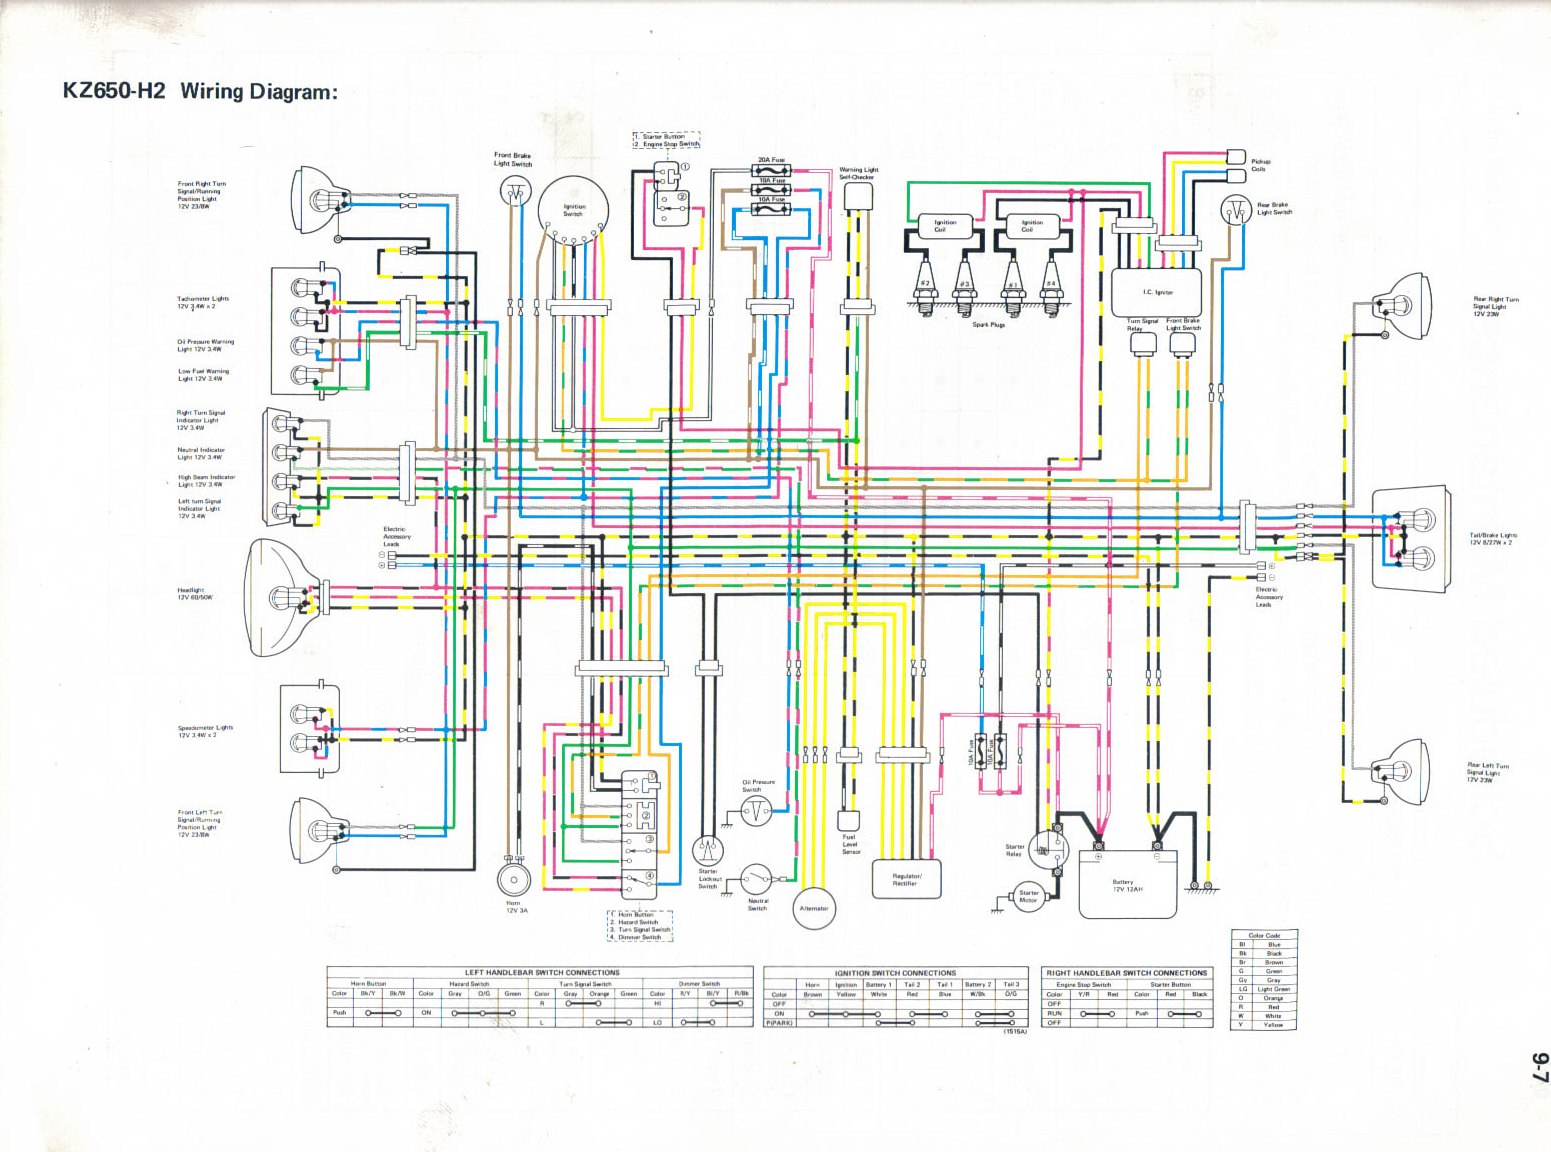 KZ650 H2 kz650 info wiring diagrams kawasaki wiring diagram at bayanpartner.co